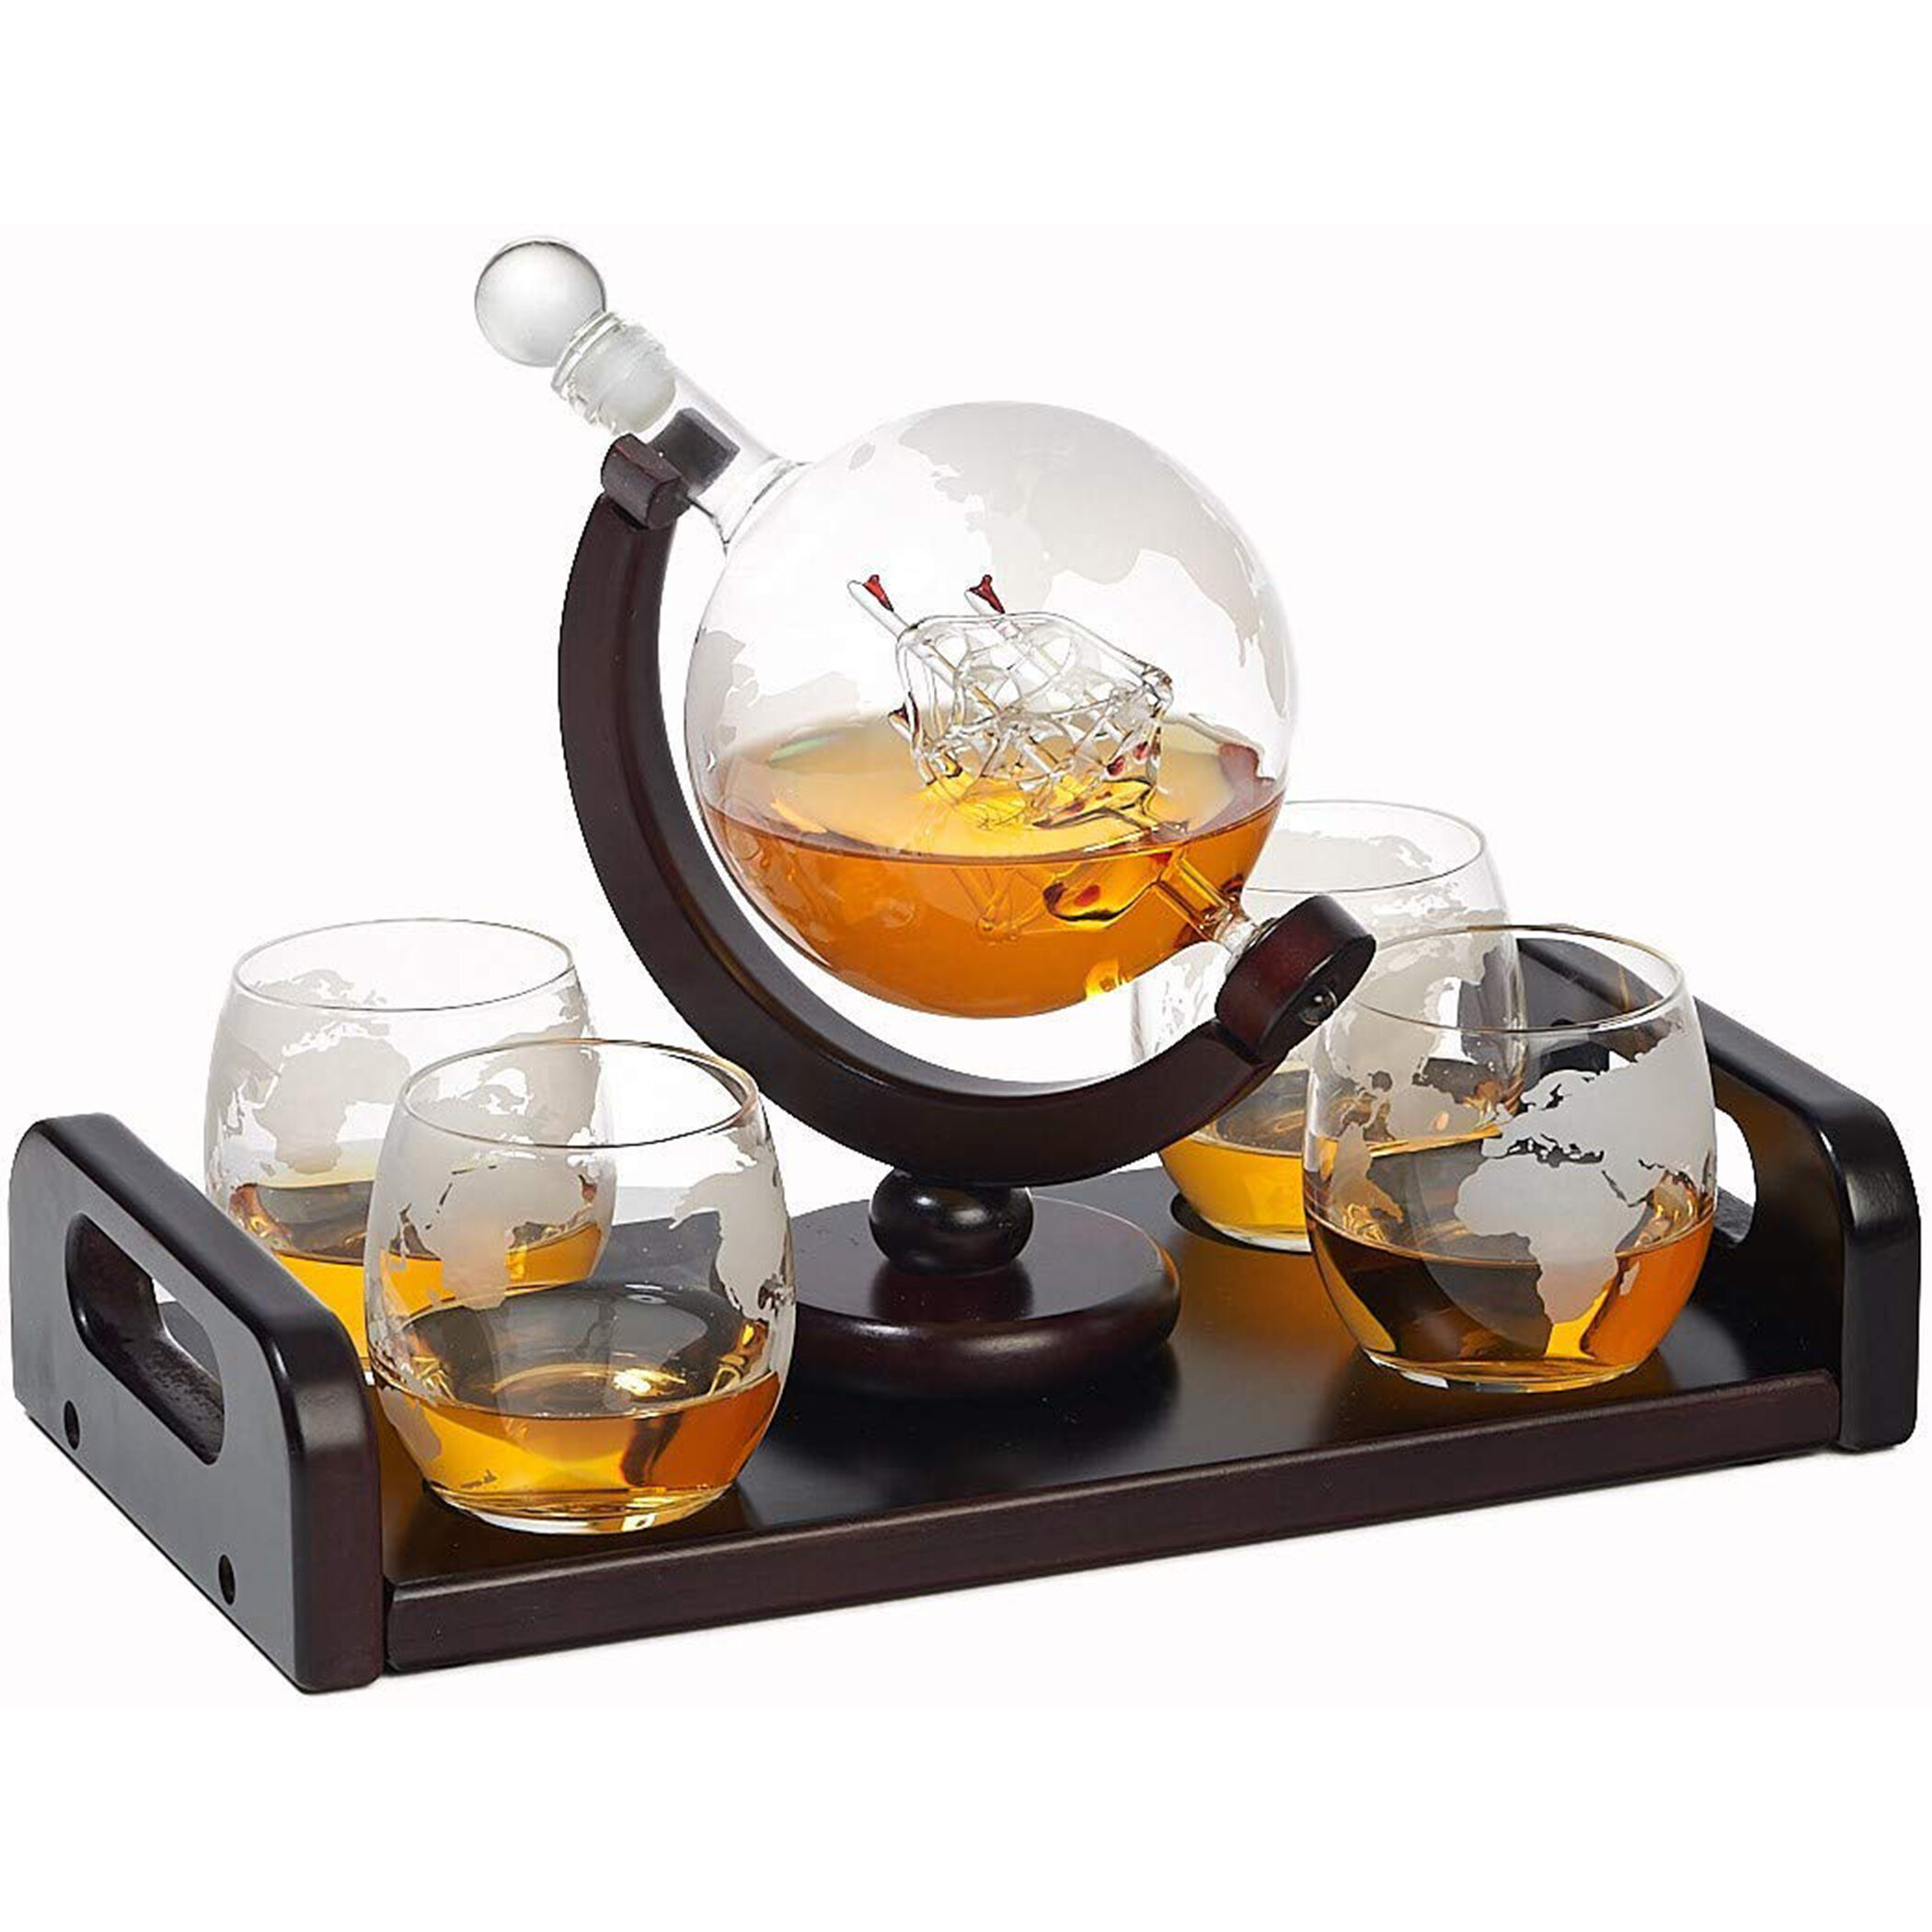 Symple Stuff Monahan Etched Globe 5 Piece Whiskey Decanter Set Reviews Wayfair